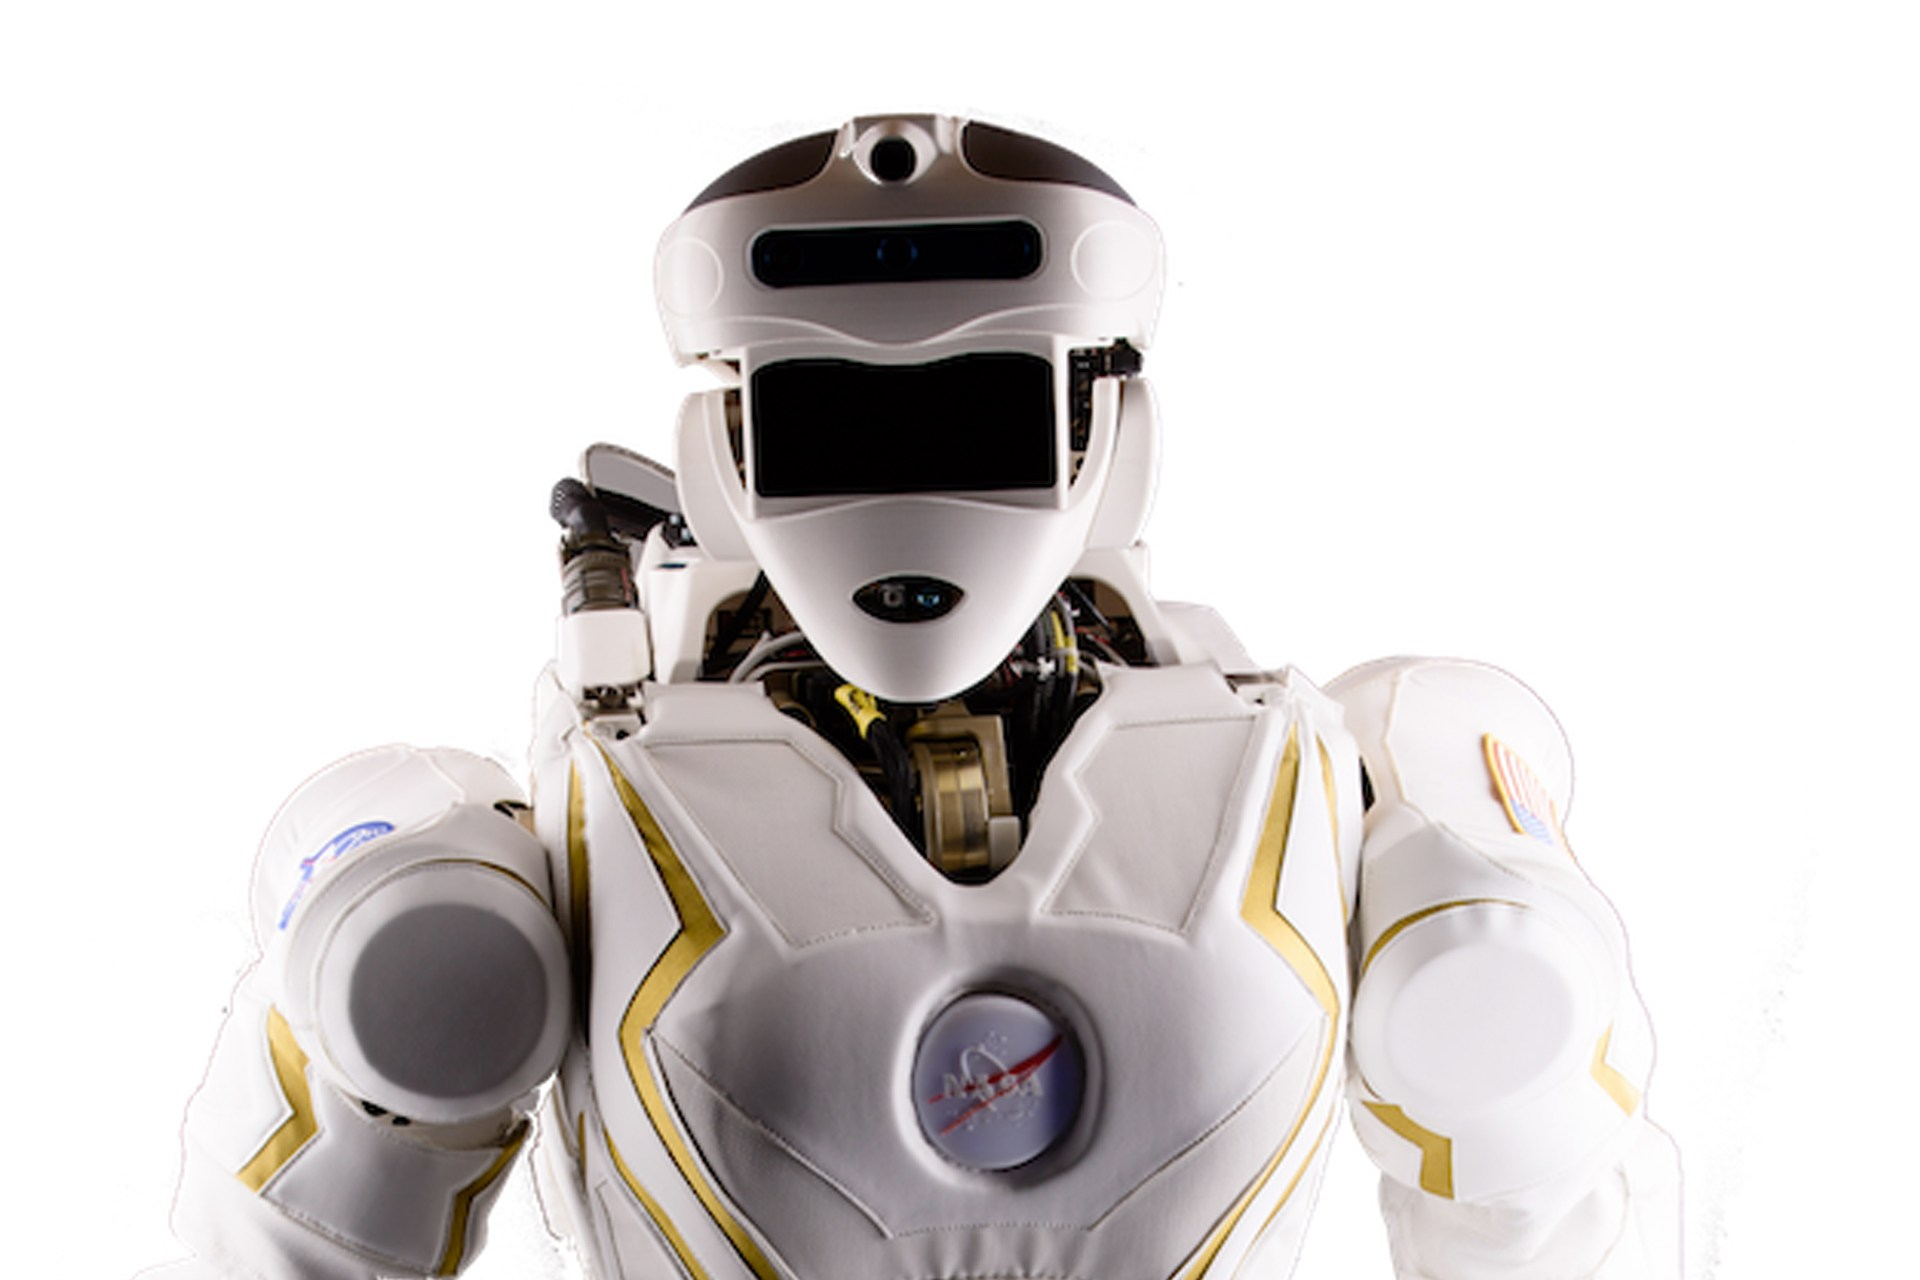 THE EUROPEAN WELFARE-STATE IN THE AGE OF ROBOTS